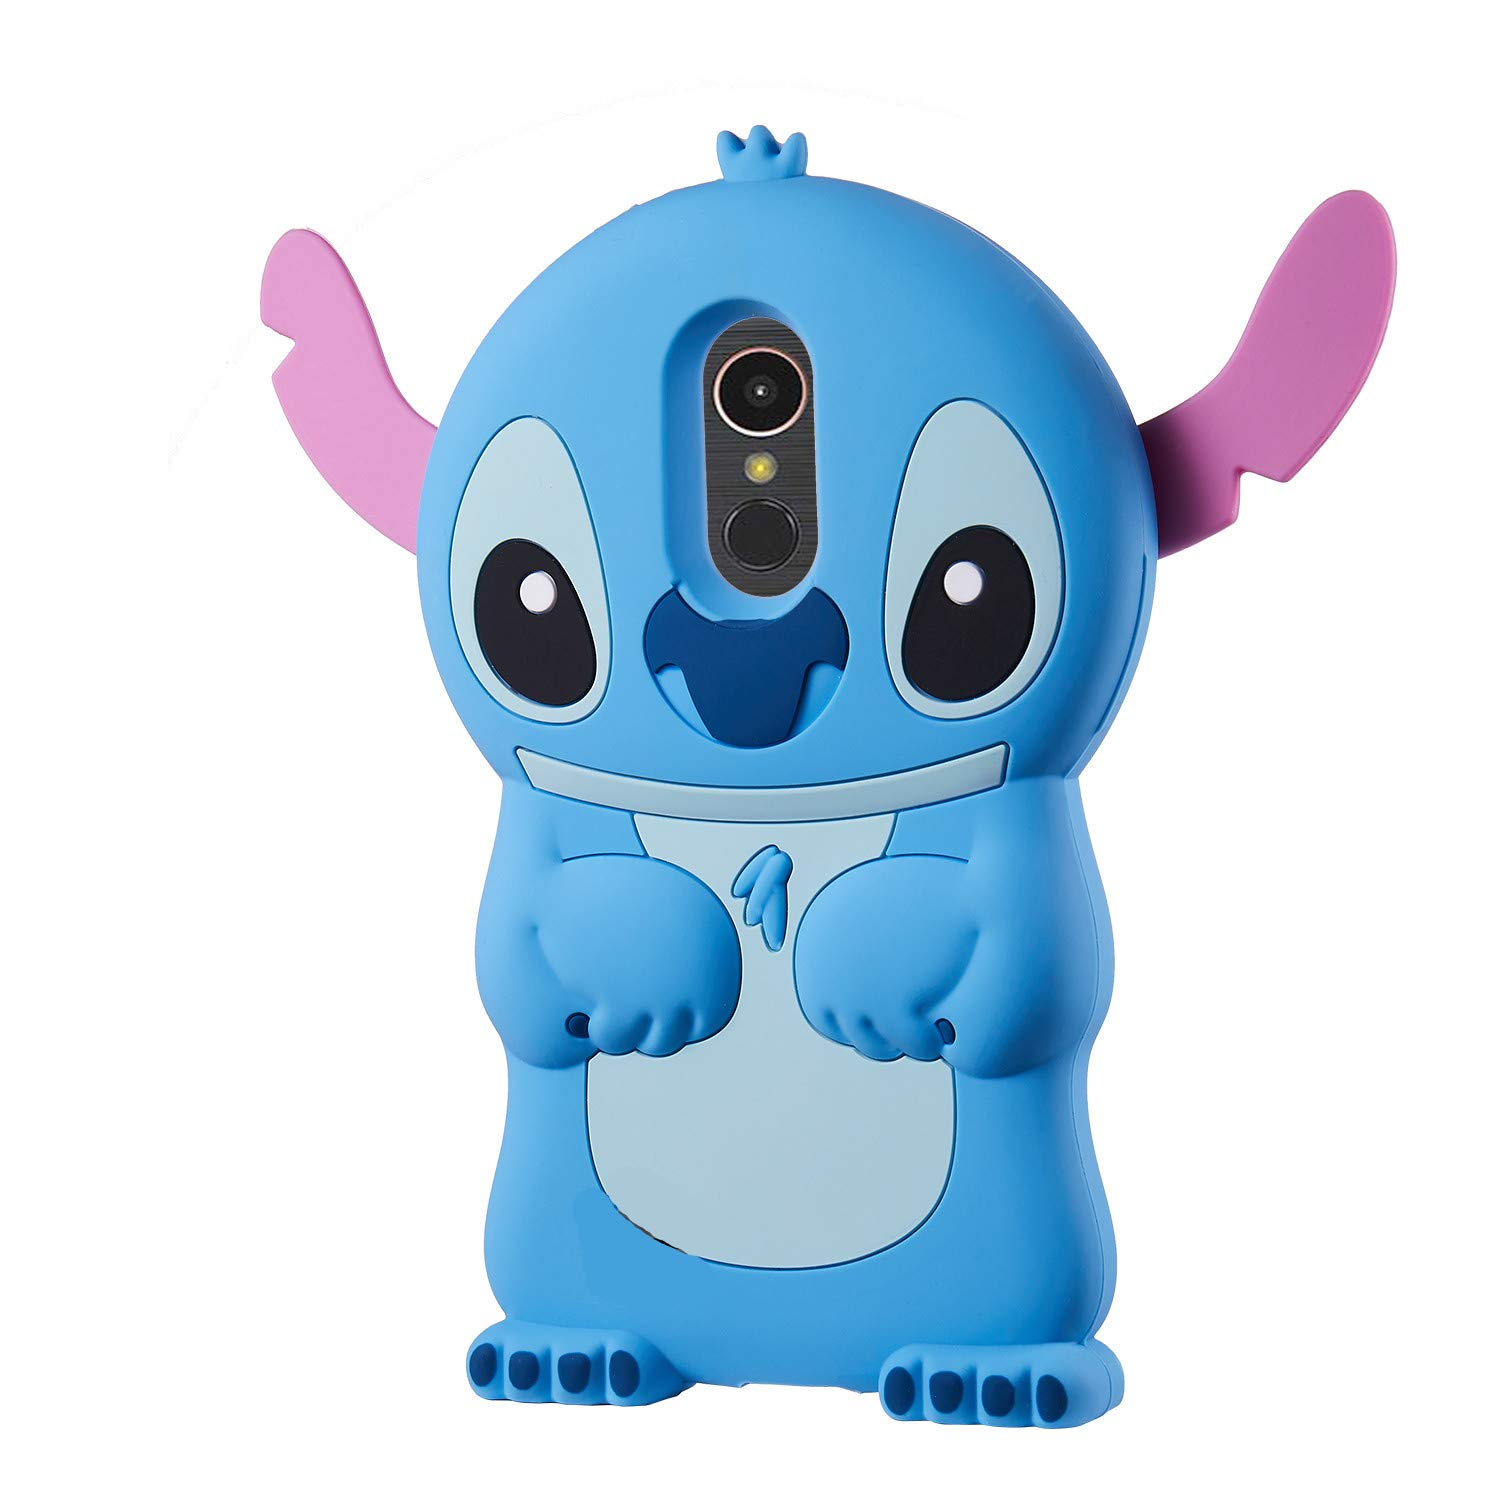 Allsky Case for LG Stylo 4 Plus(Q710) /LG Q Stylus,Cartoon Soft Silicone Cute 3D Fun Cool Cover,Kawaii Unique Kids Girls Teens Animal Character Rubber Skin Shockproof Cases for LG Stylo4 Blue Stitch